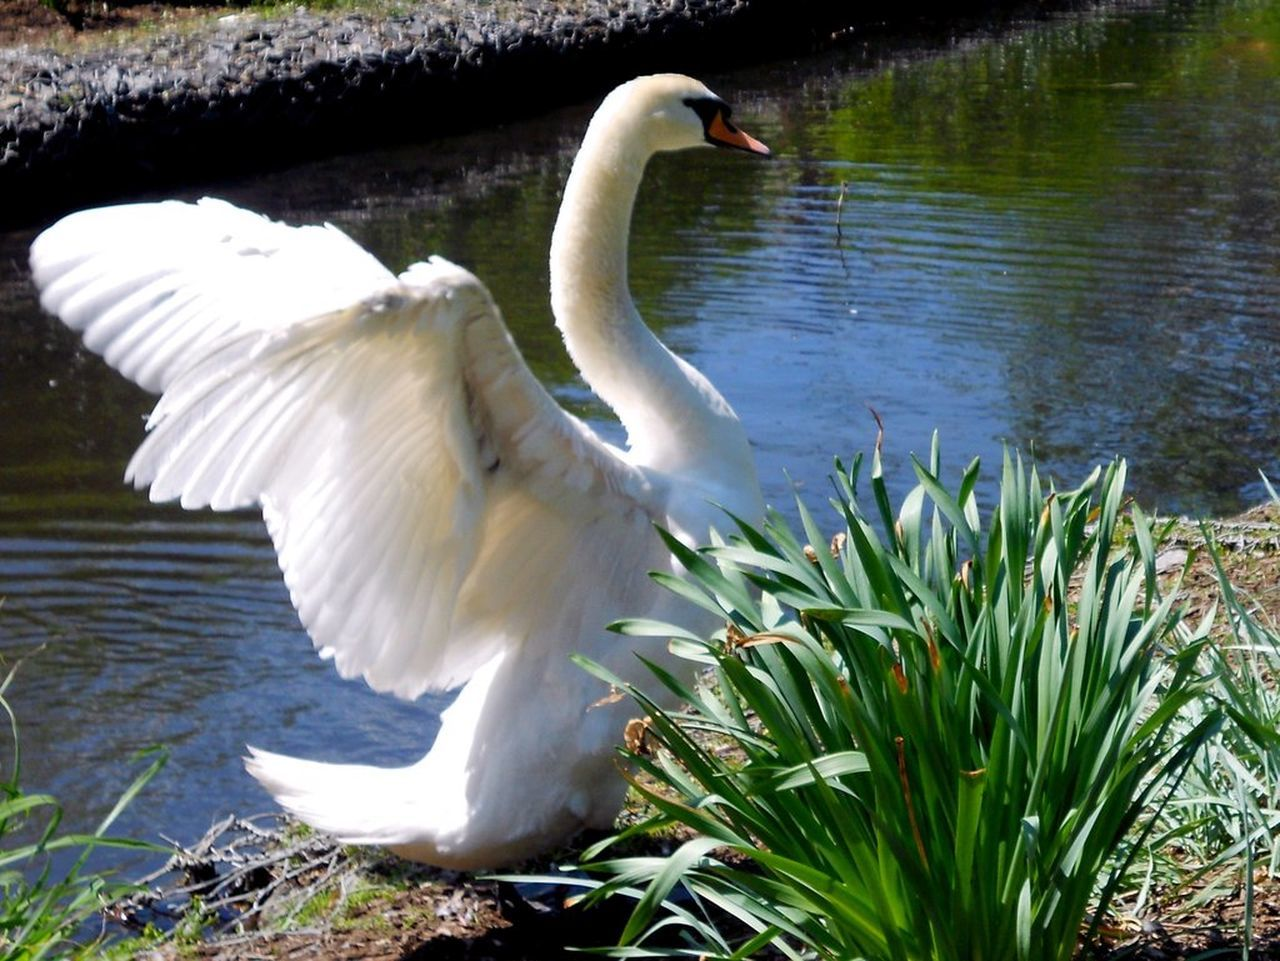 animal themes, bird, animals in the wild, lake, white color, water, one animal, swan, animal wildlife, day, nature, spread wings, no people, water bird, grass, outdoors, beauty in nature, swimming